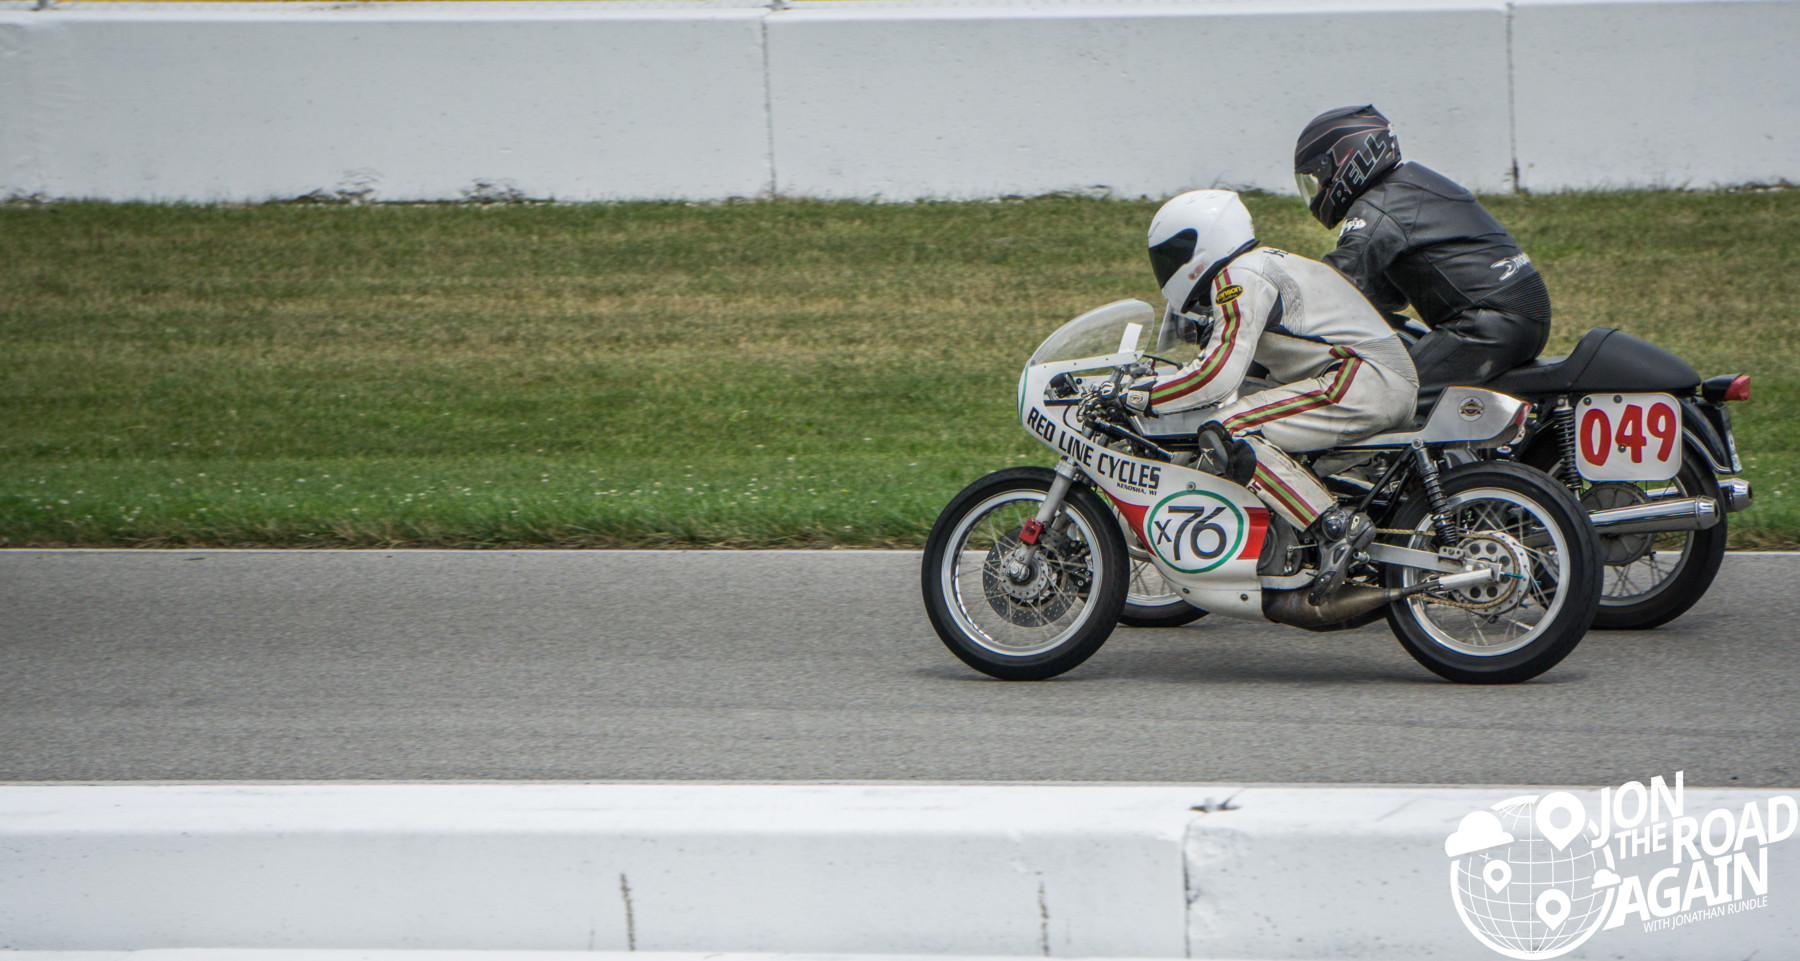 Leaving the starting line at Vintage motorcycle days